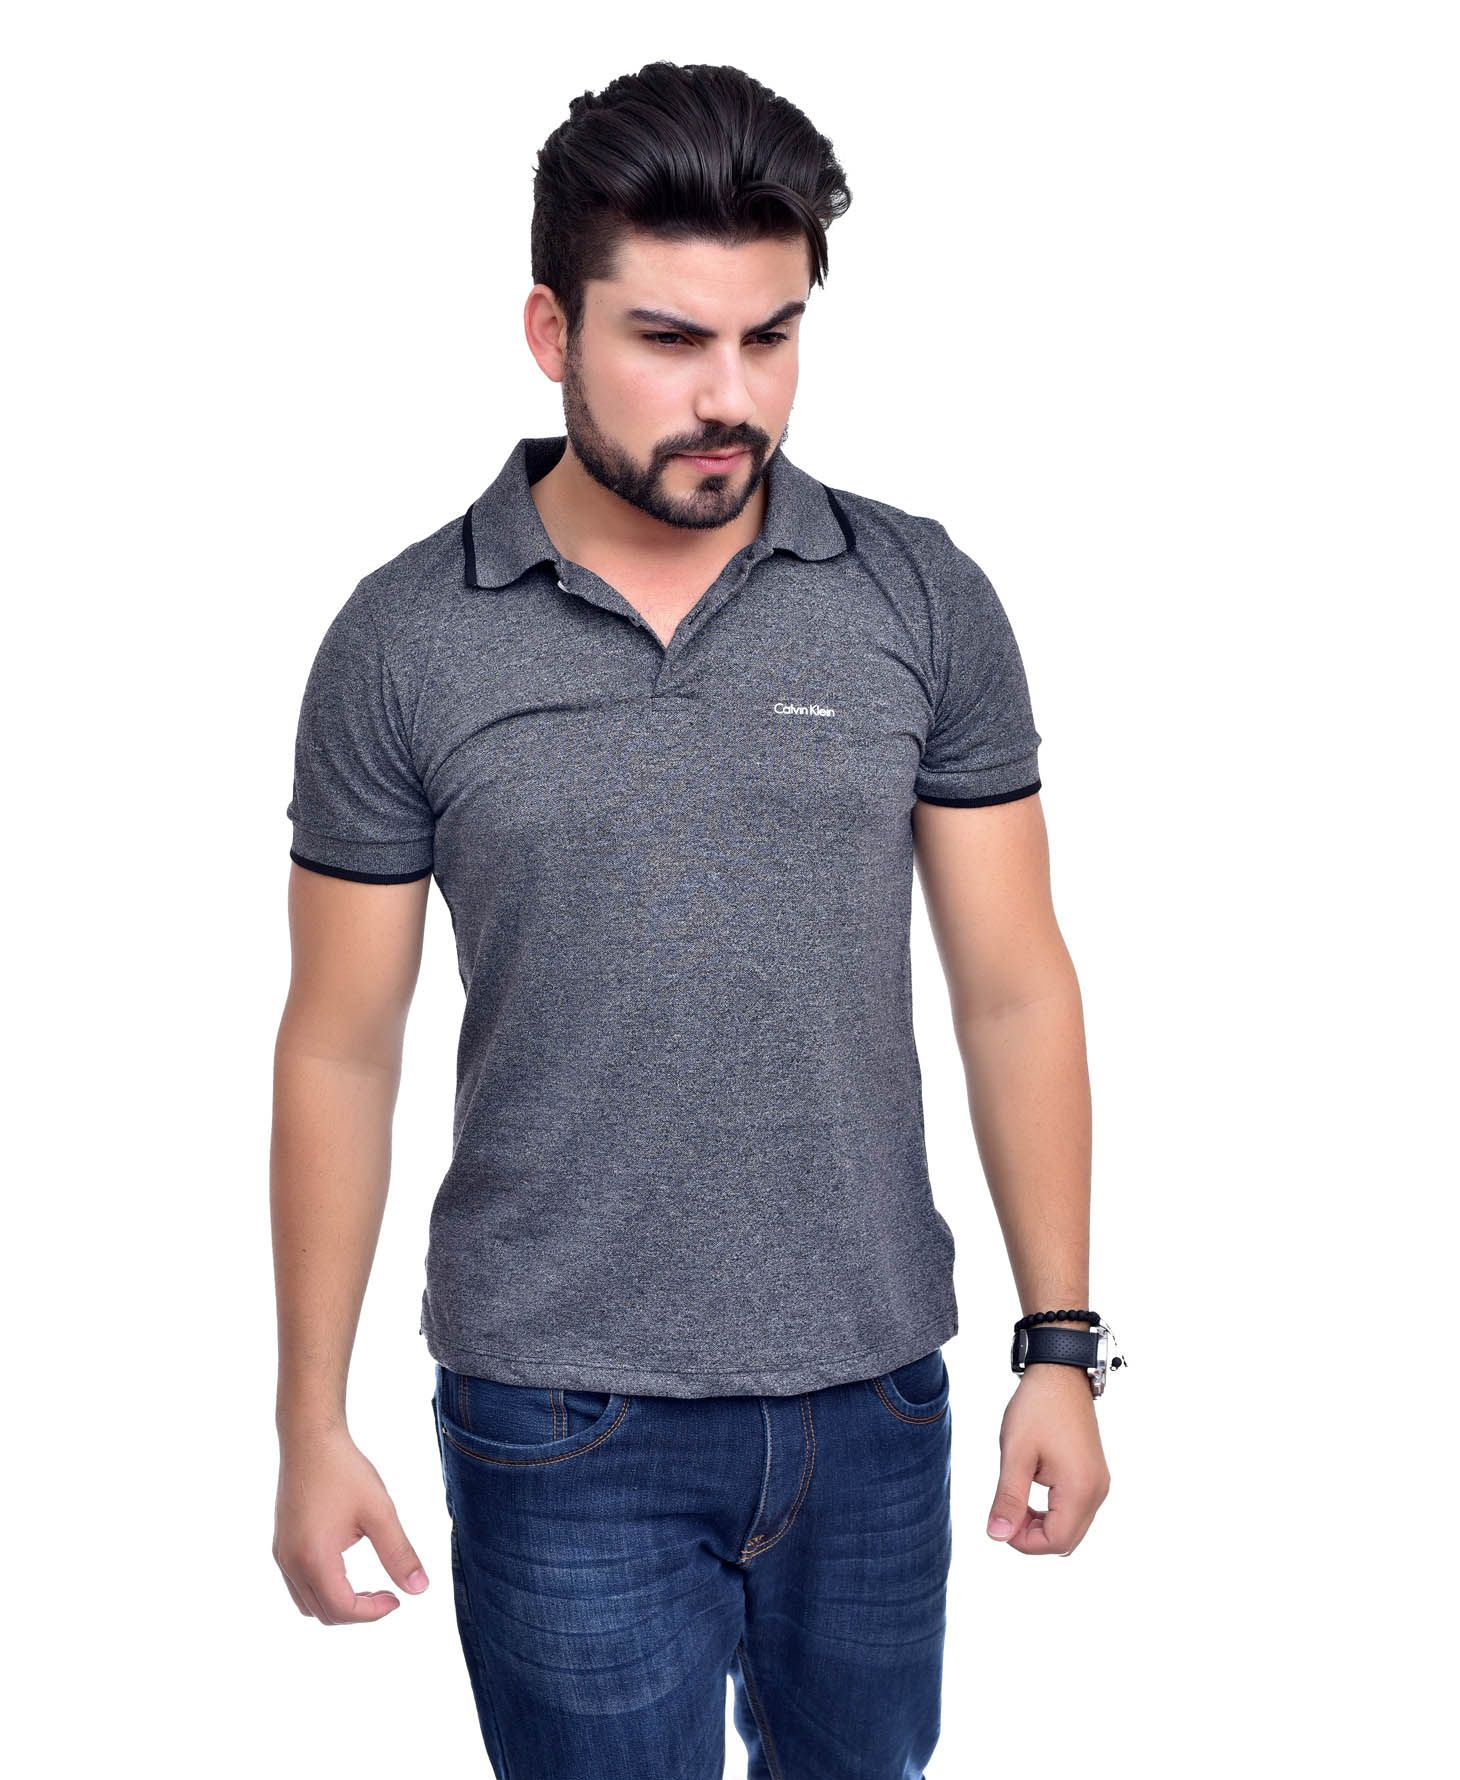 Polo Basic Ck Mescla Escuro - Ultra Slim Fit